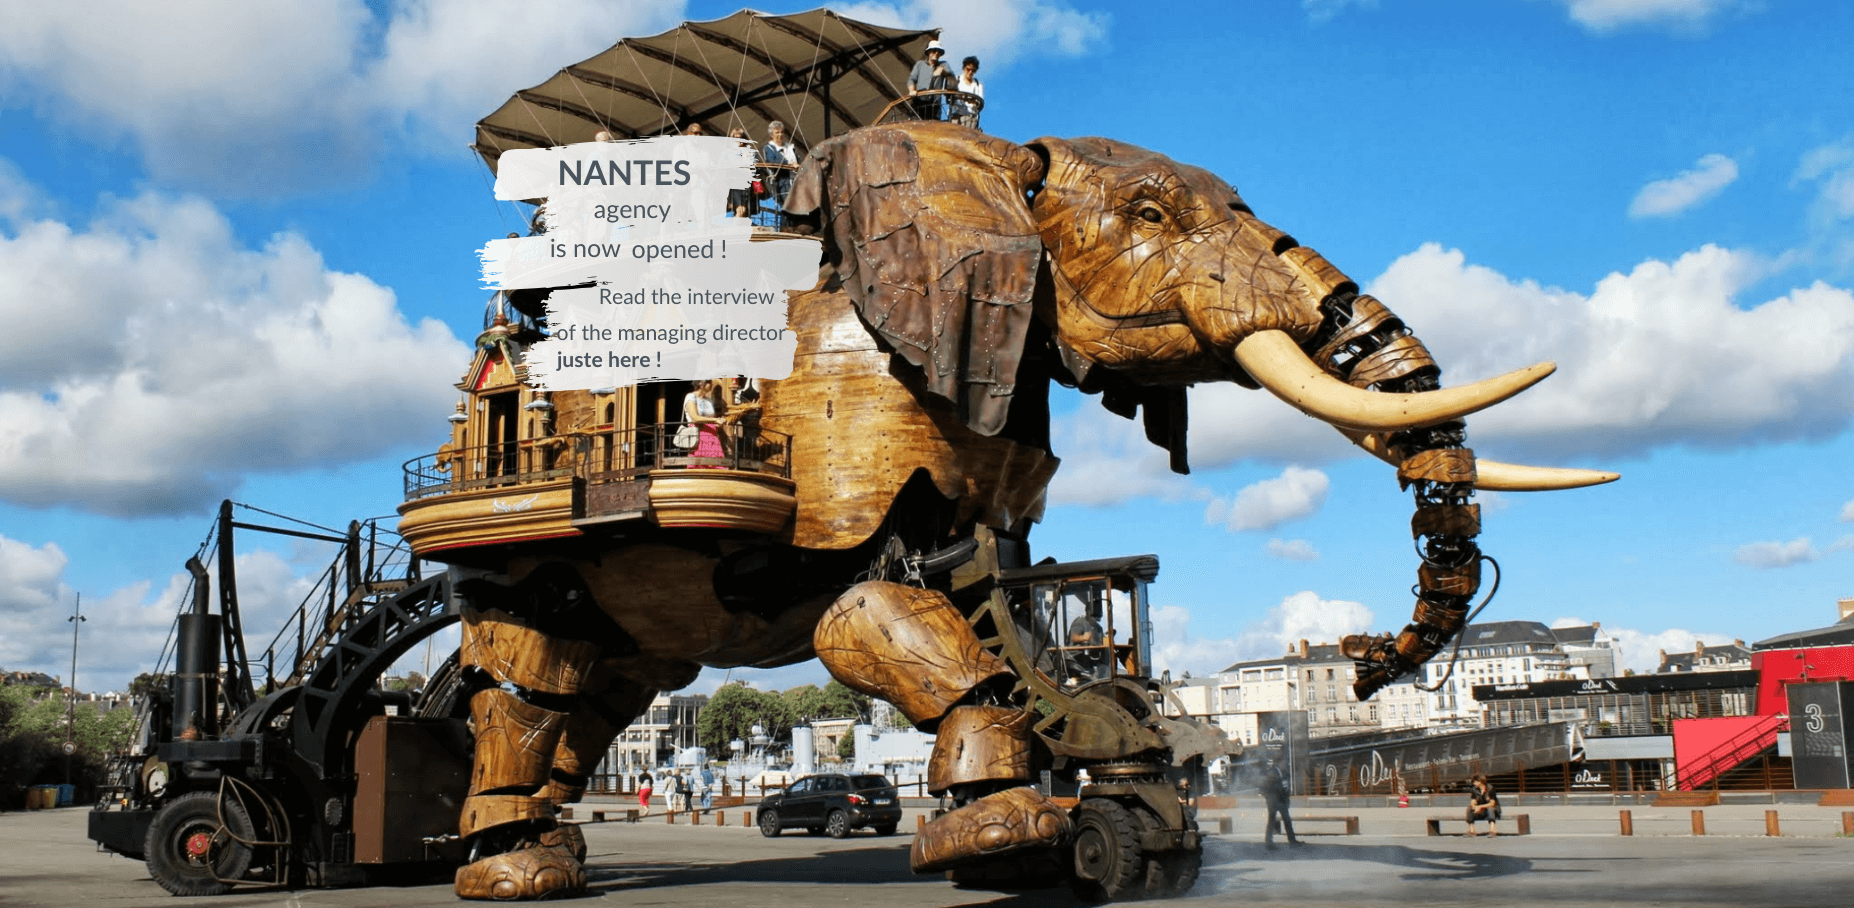 Nantes agency is now opened, read the interview of the managing director just here